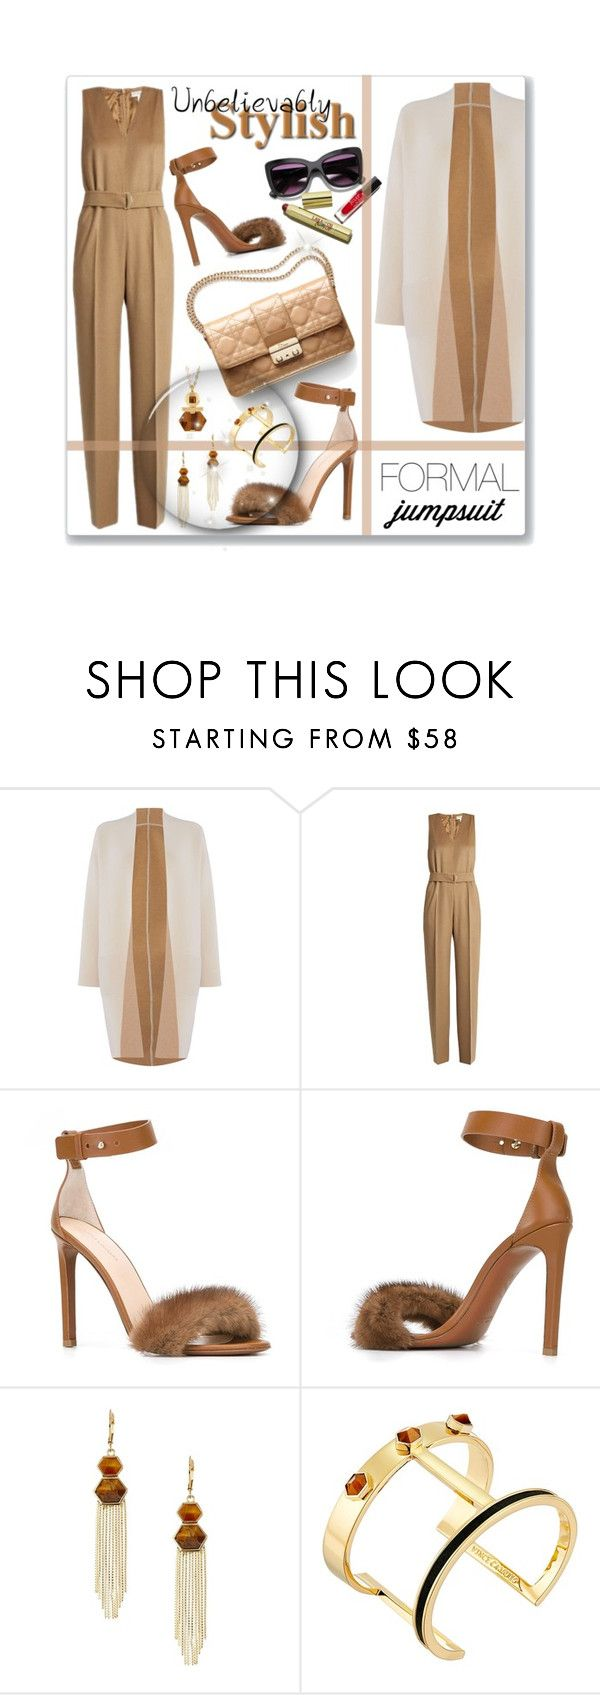 """Formal Jumpsuit"" by leanne-mcclean ❤ liked on Polyvore featuring MaxMara, Erika Cavallini Semi-Couture, Vince Camuto, natural, neutral, jumpsuit, fur and officewear"